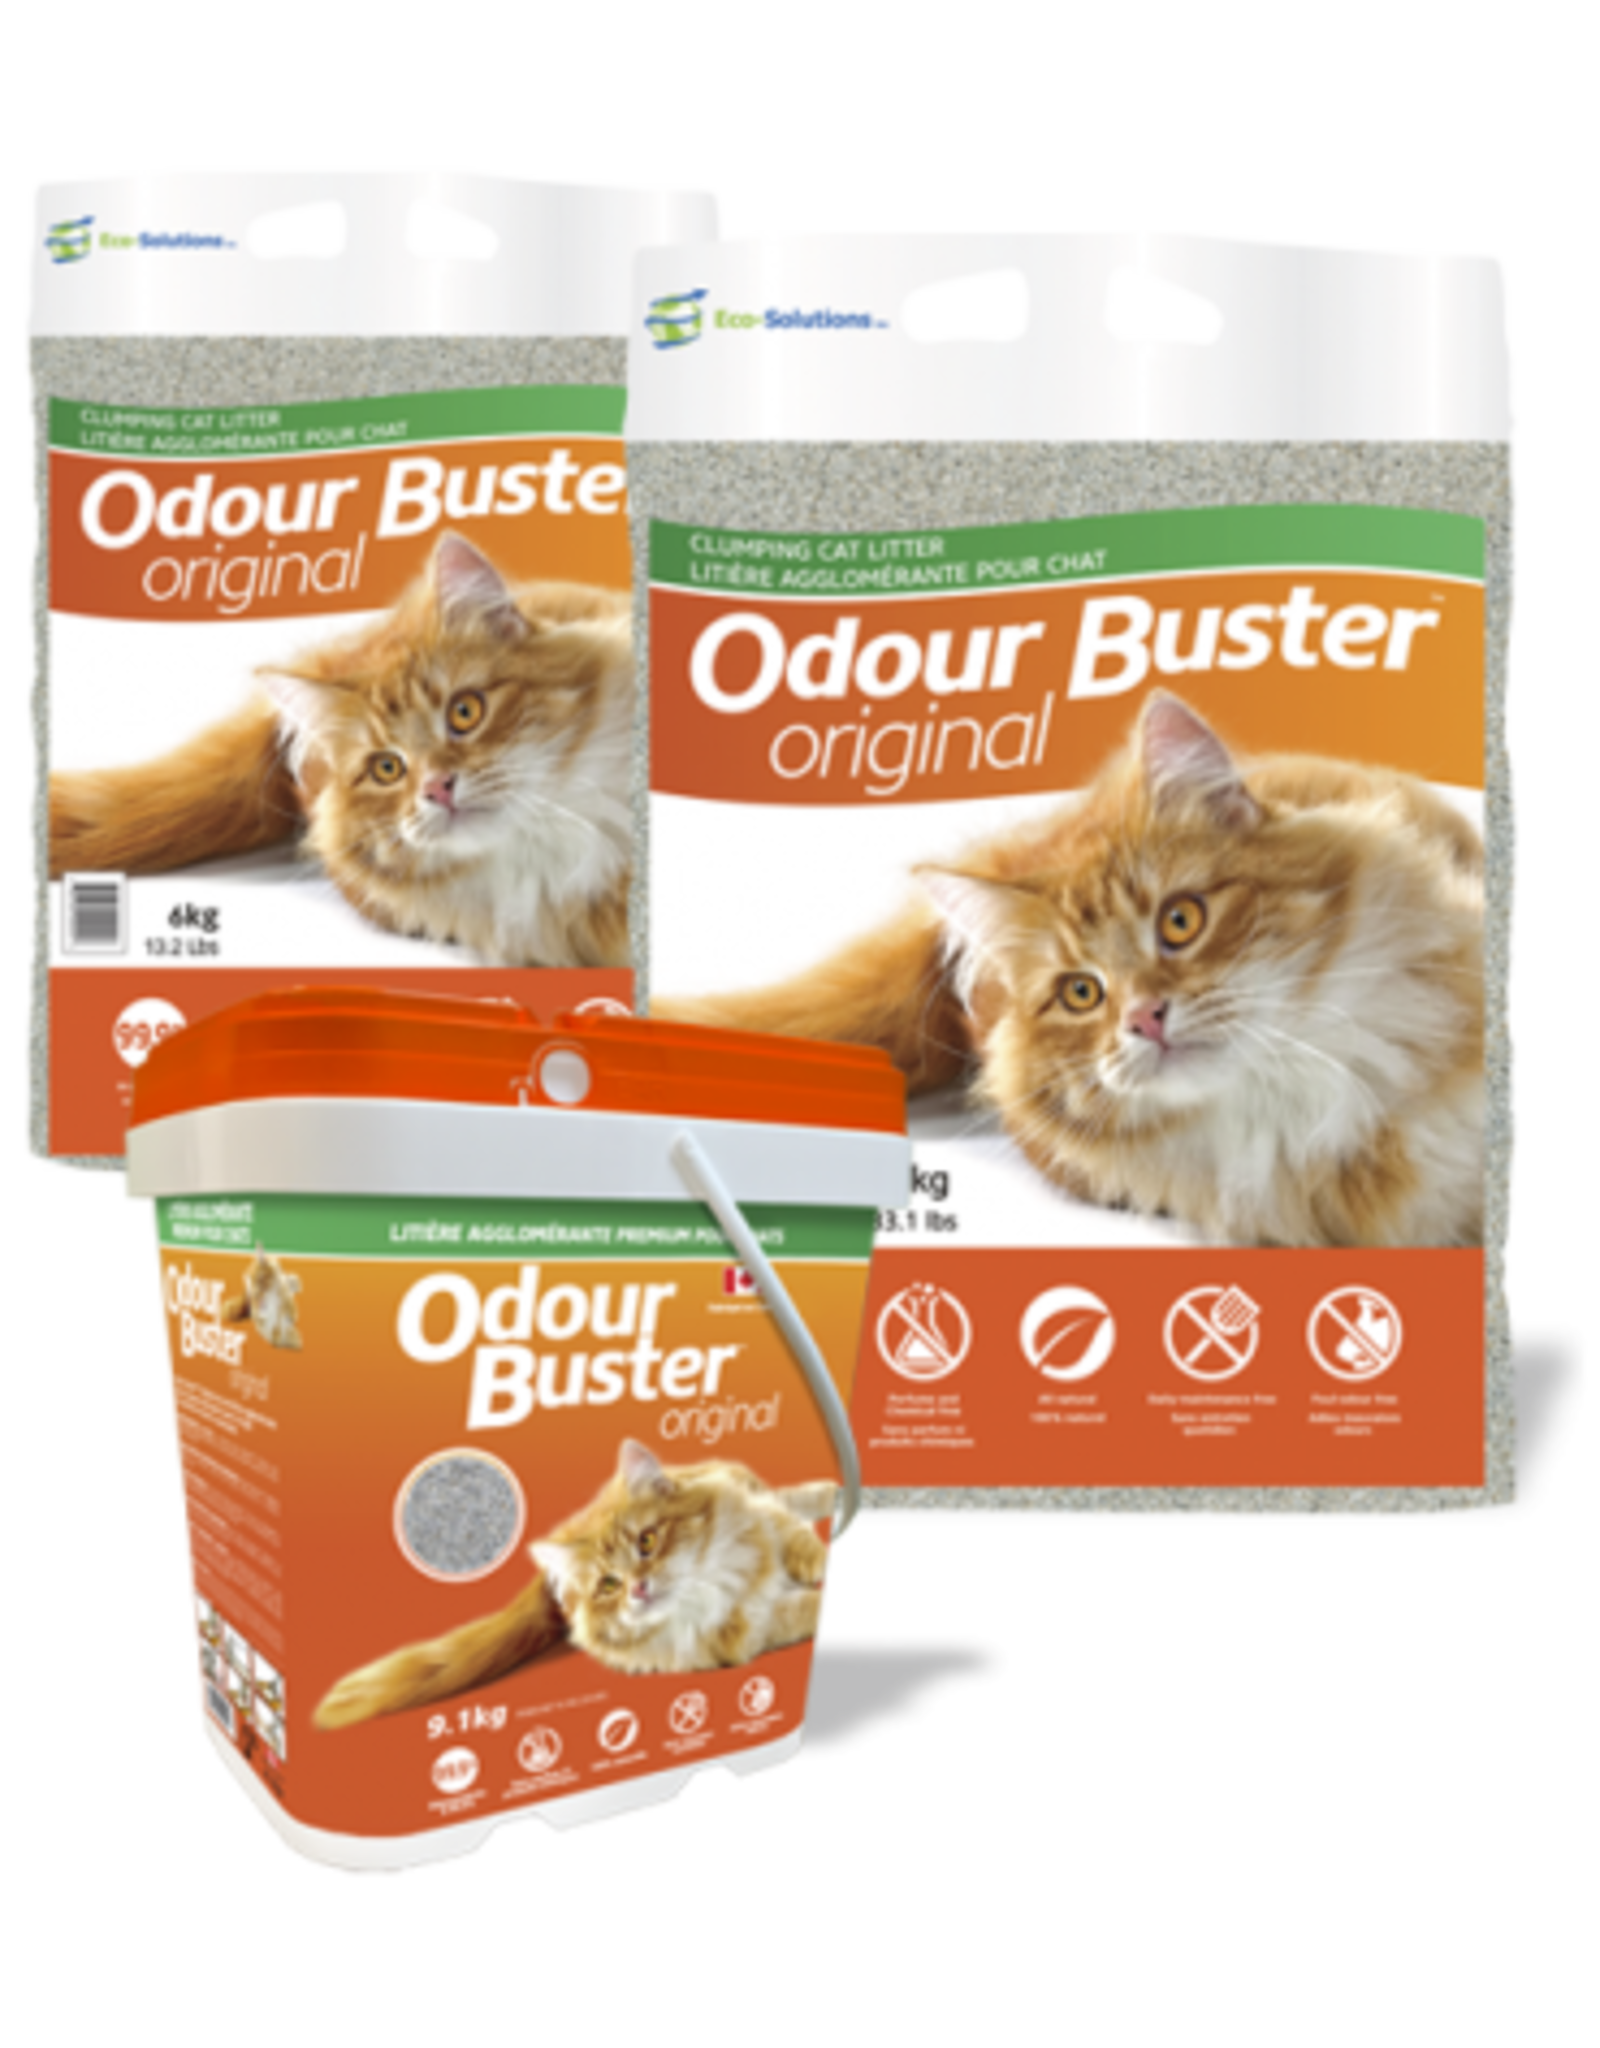 Odour Buster Odour Buster